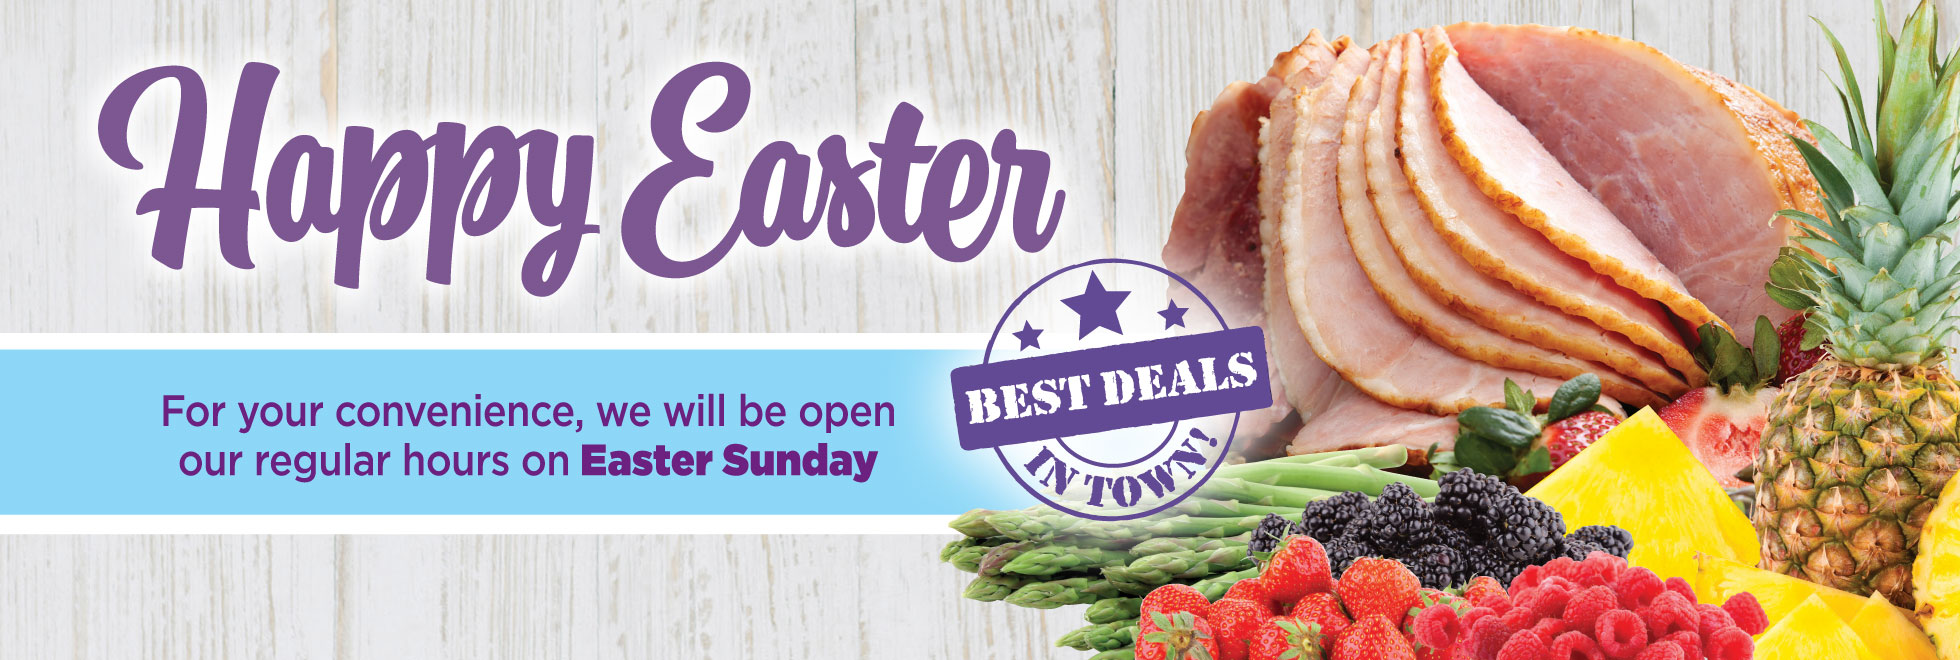 Happy Easter Best Deals